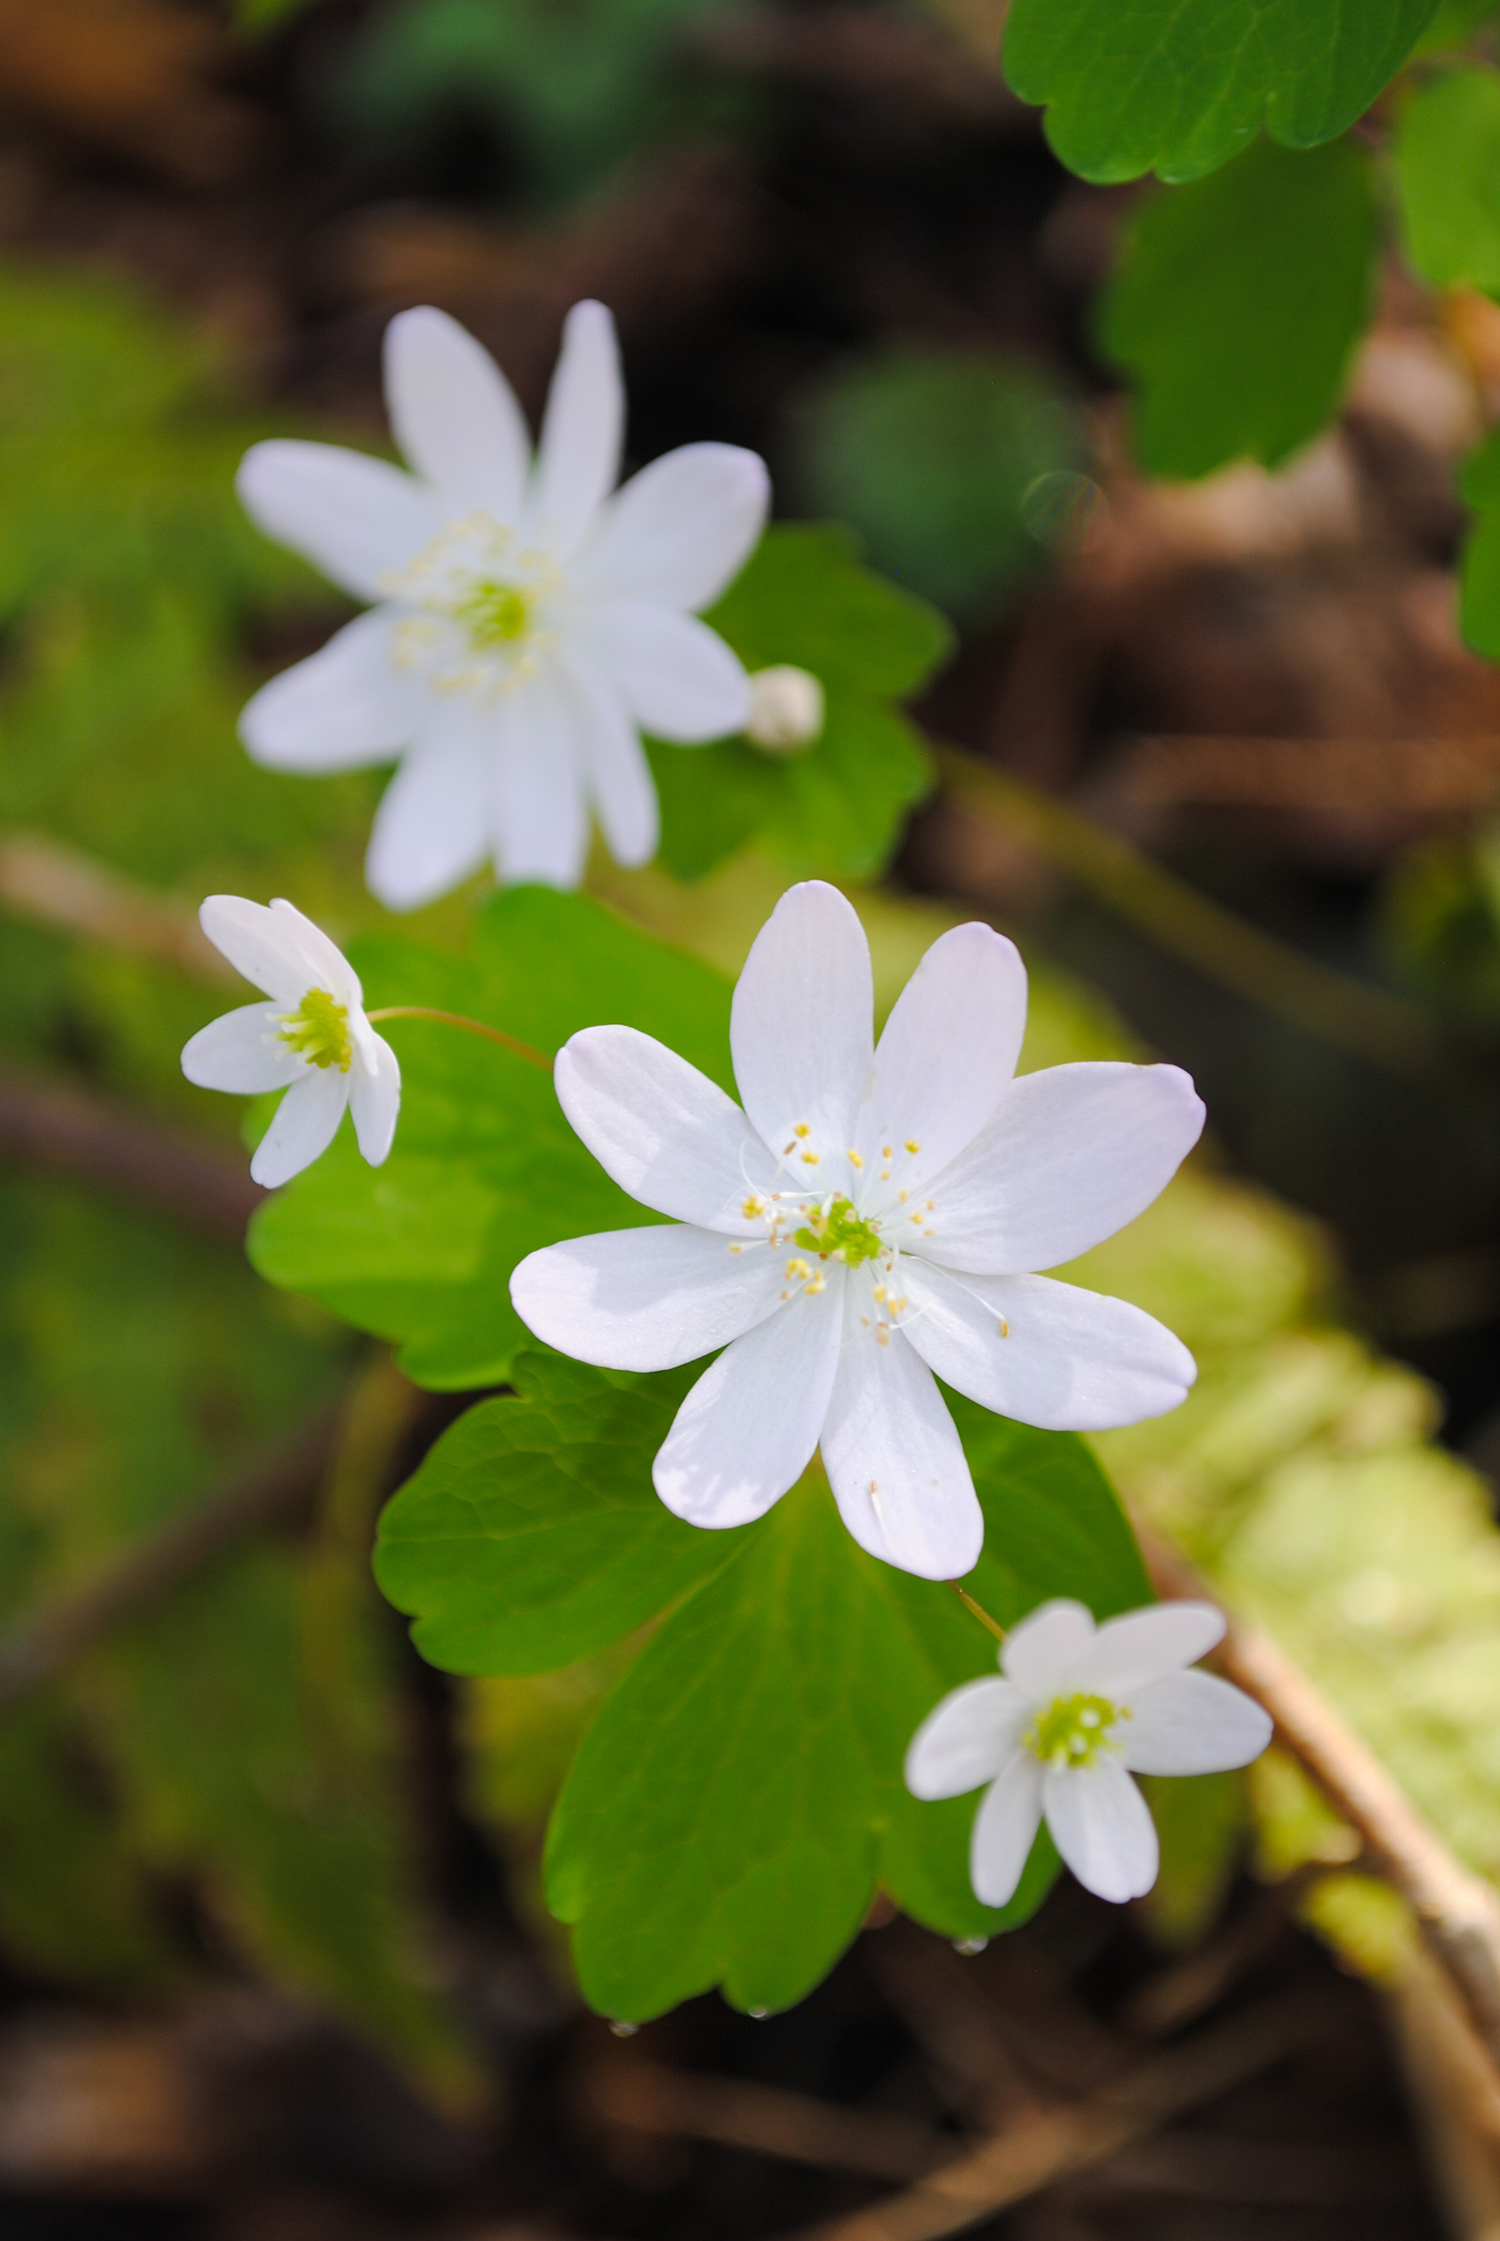 Anemonella  thalictroides (rue anenome) occasionally dotted the forest floor.